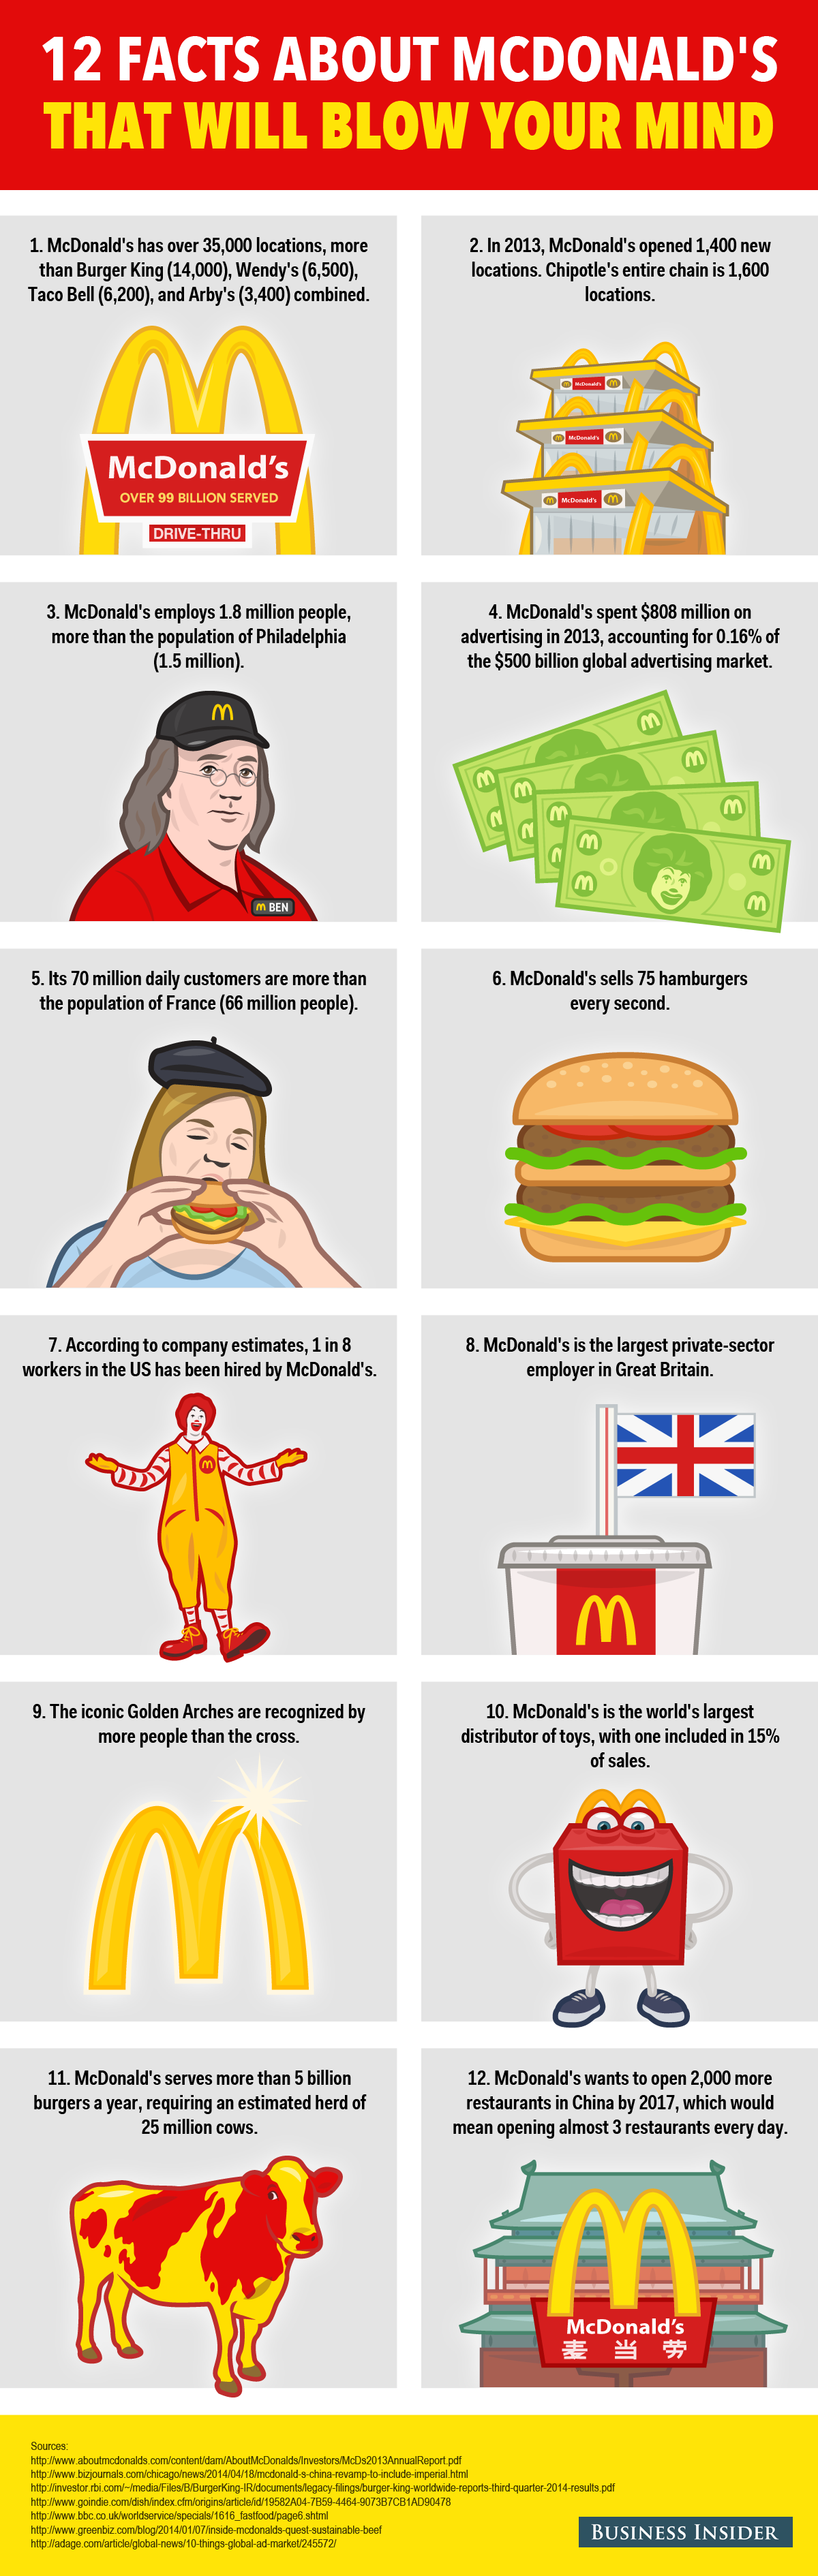 globalization of mcdonalds